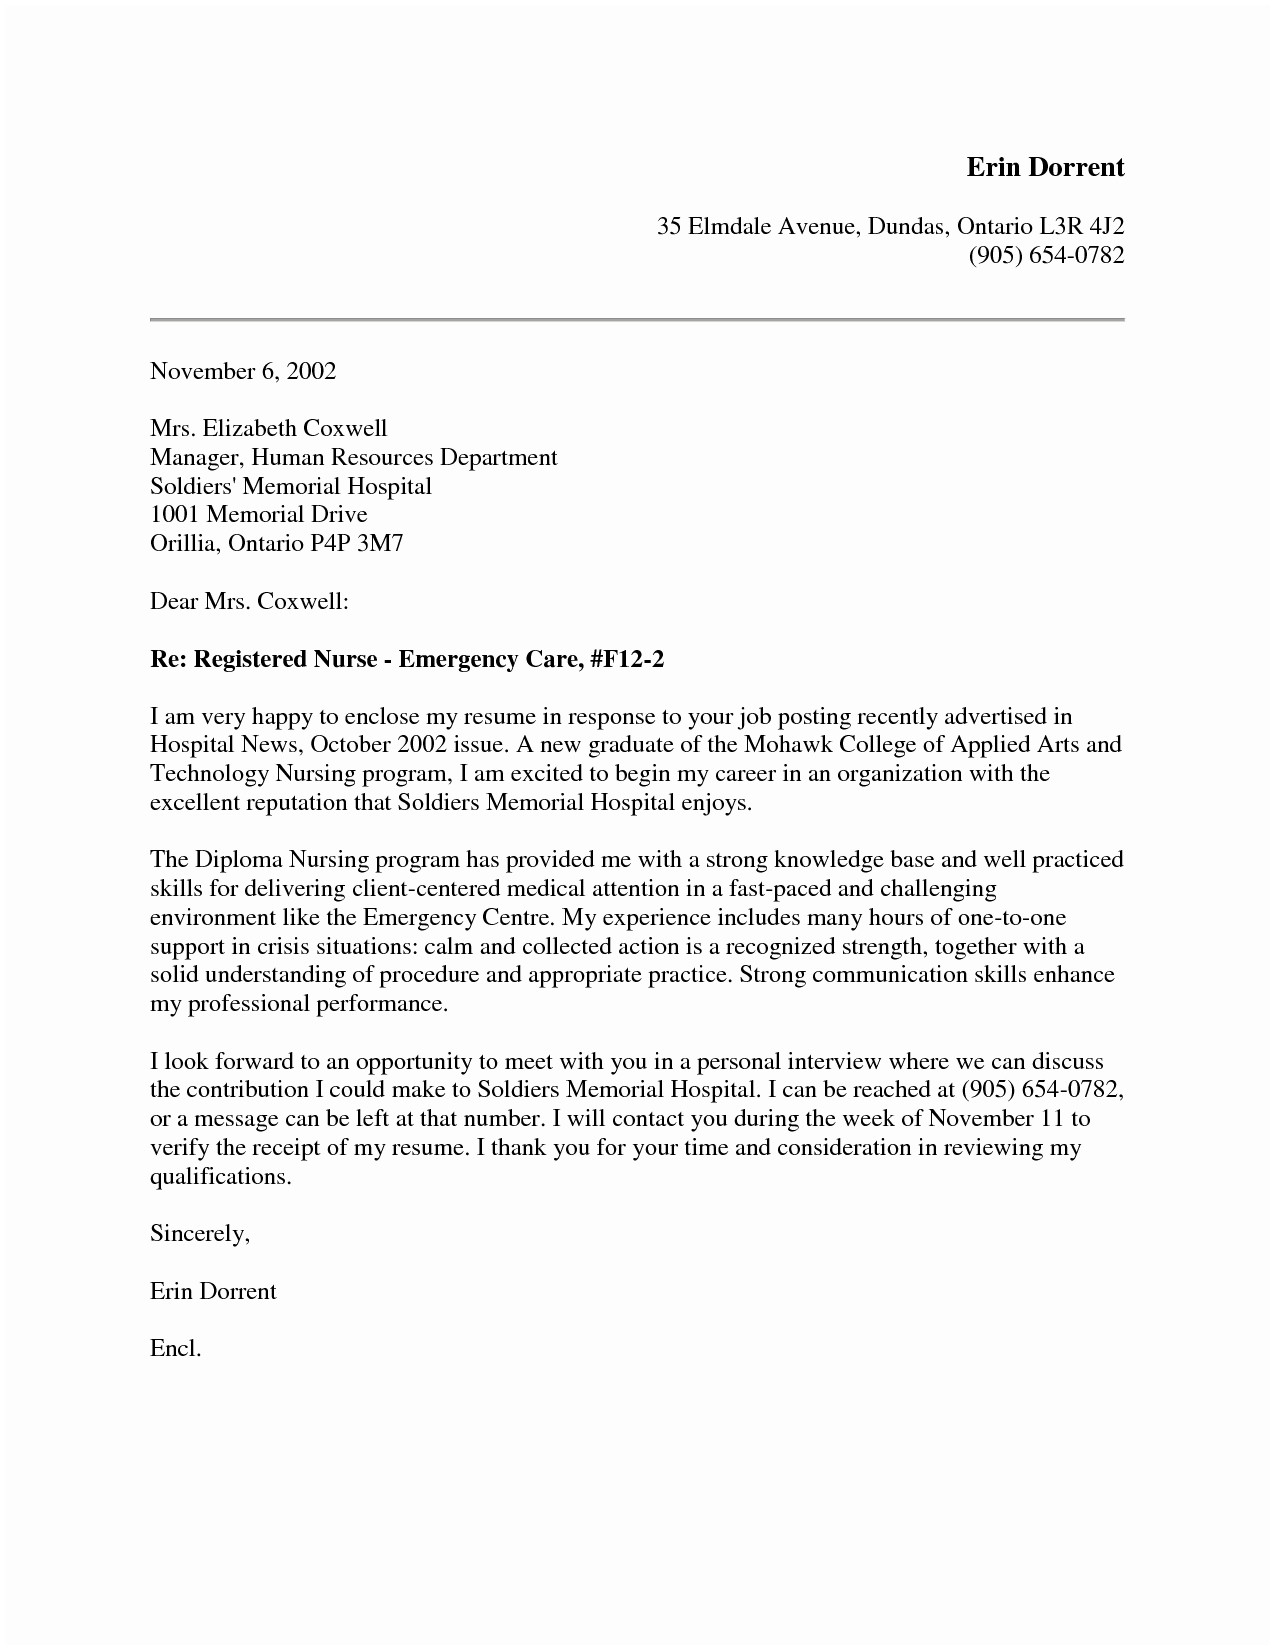 Letter to Troops Template - Cover Letter Examples for Nurses Nursing Cover Letter New Grad